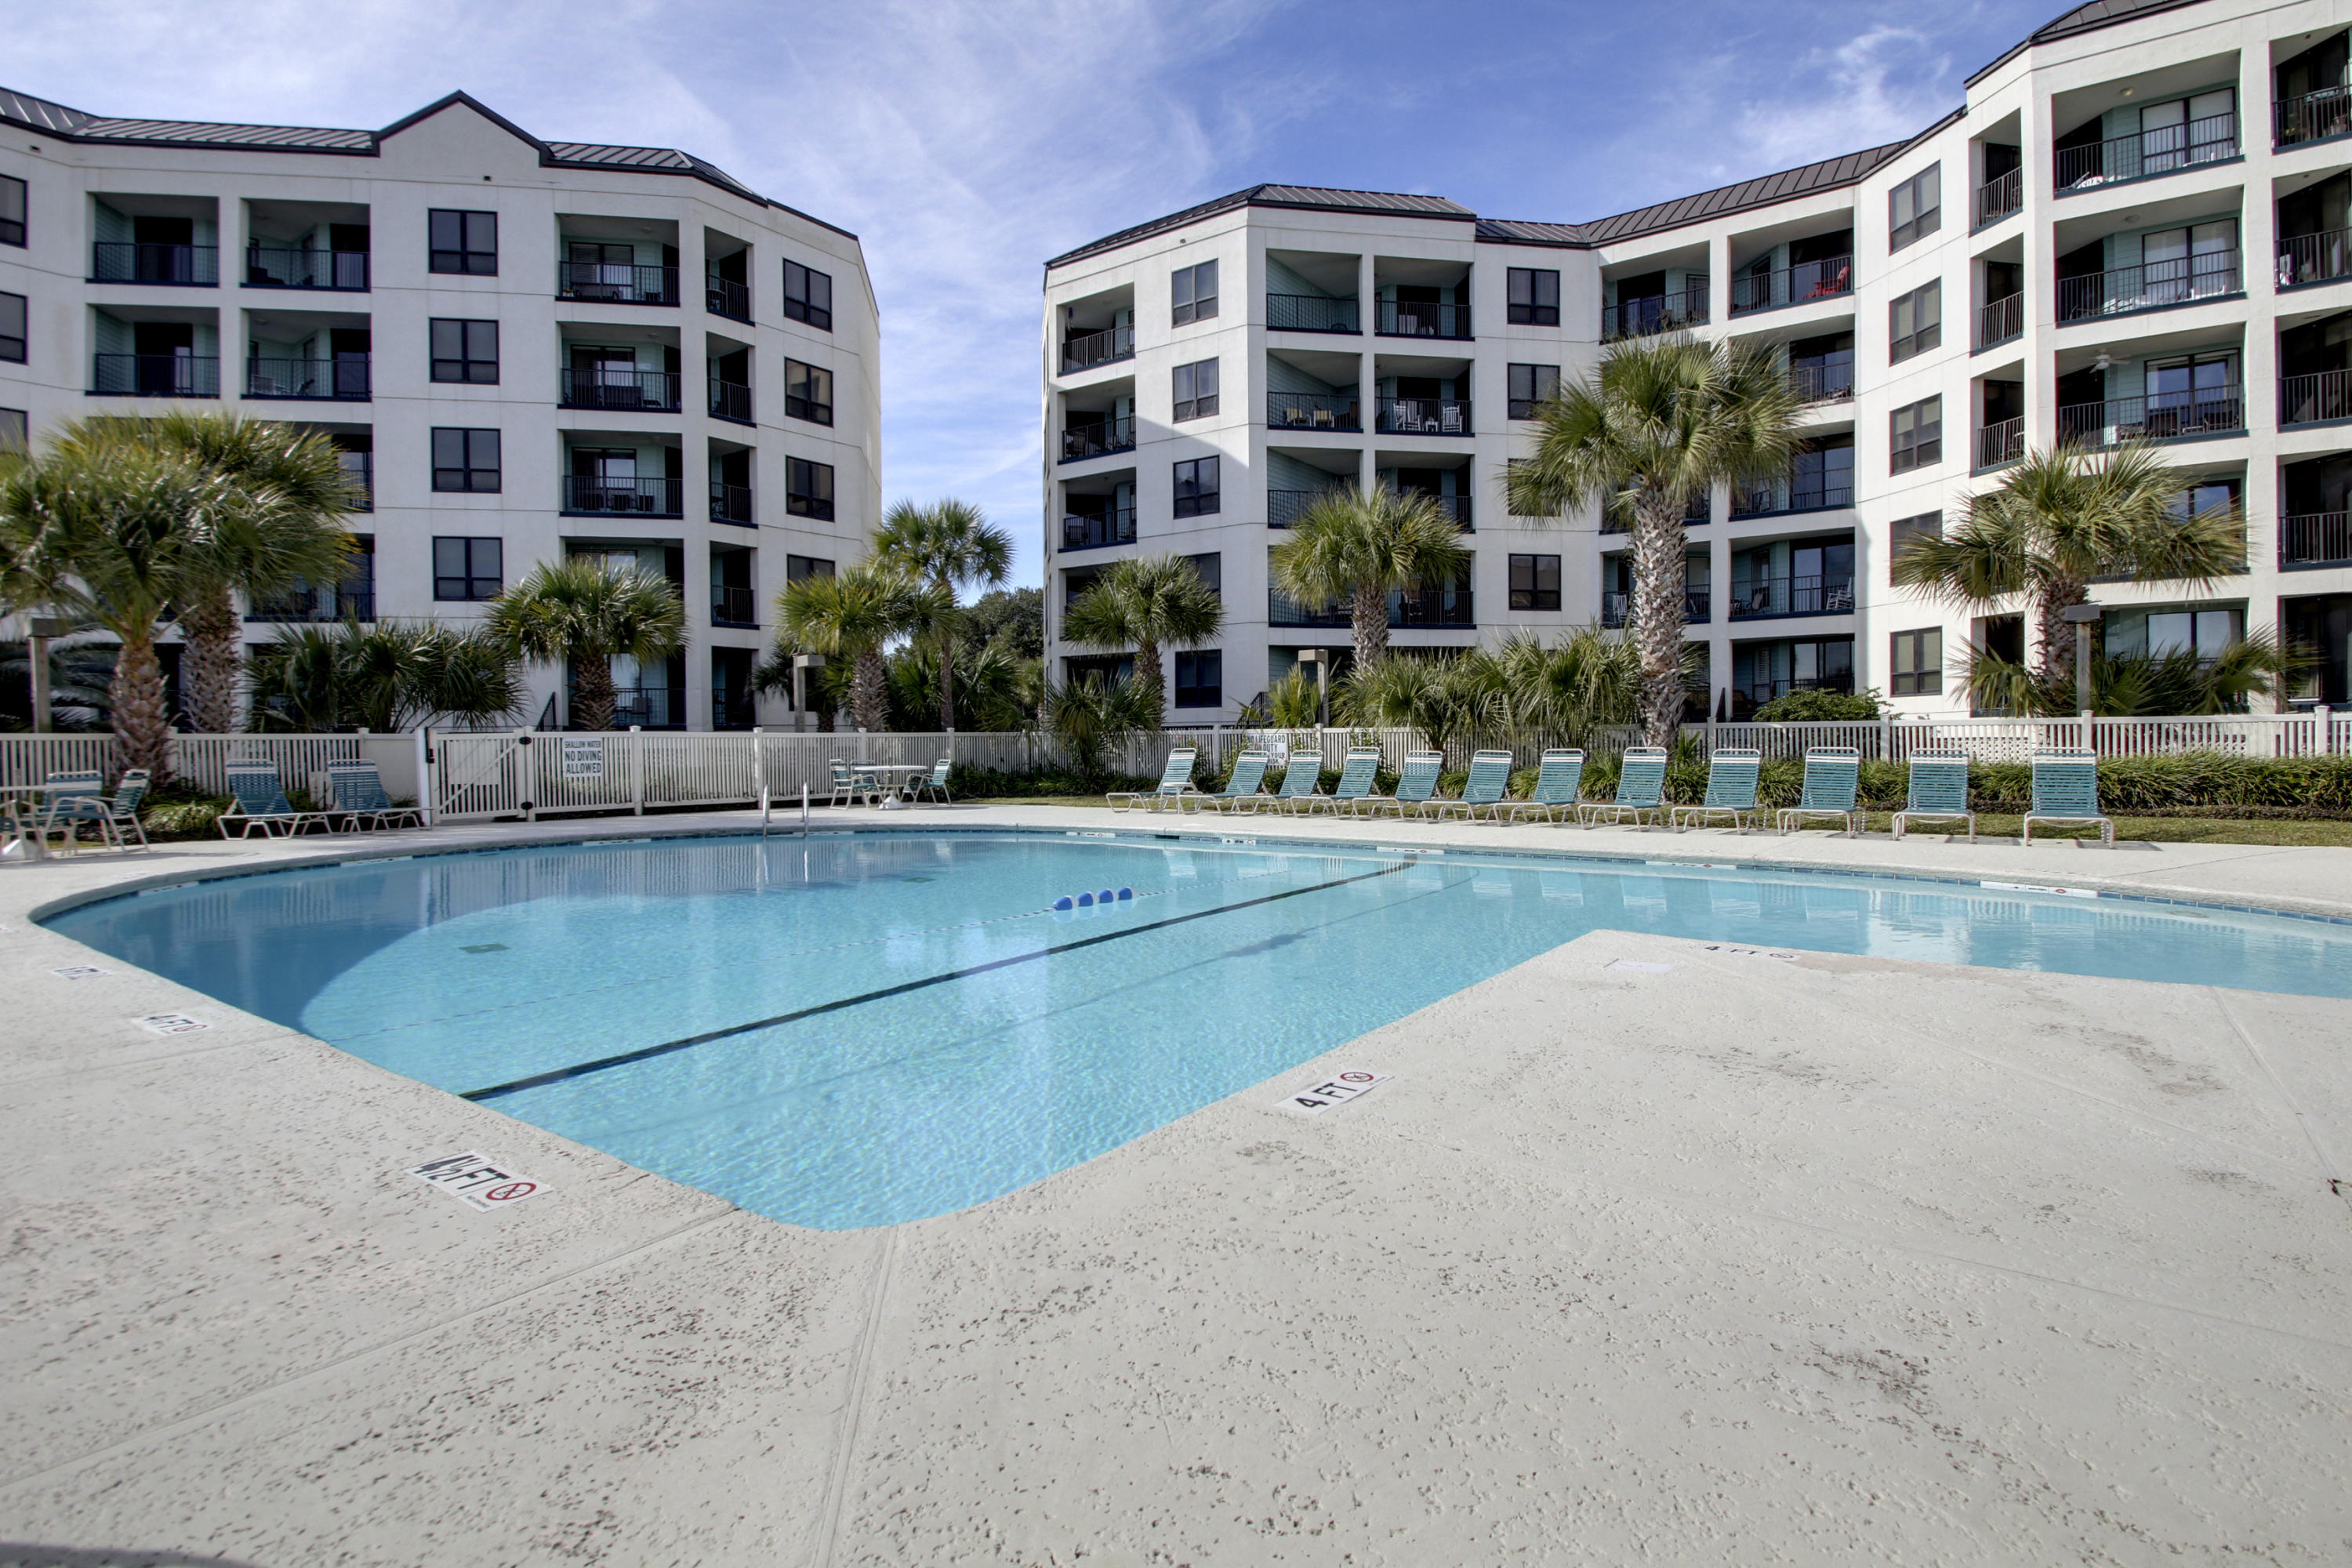 Wild Dunes Homes For Sale - 103 Summerhouse, Isle of Palms, SC - 10